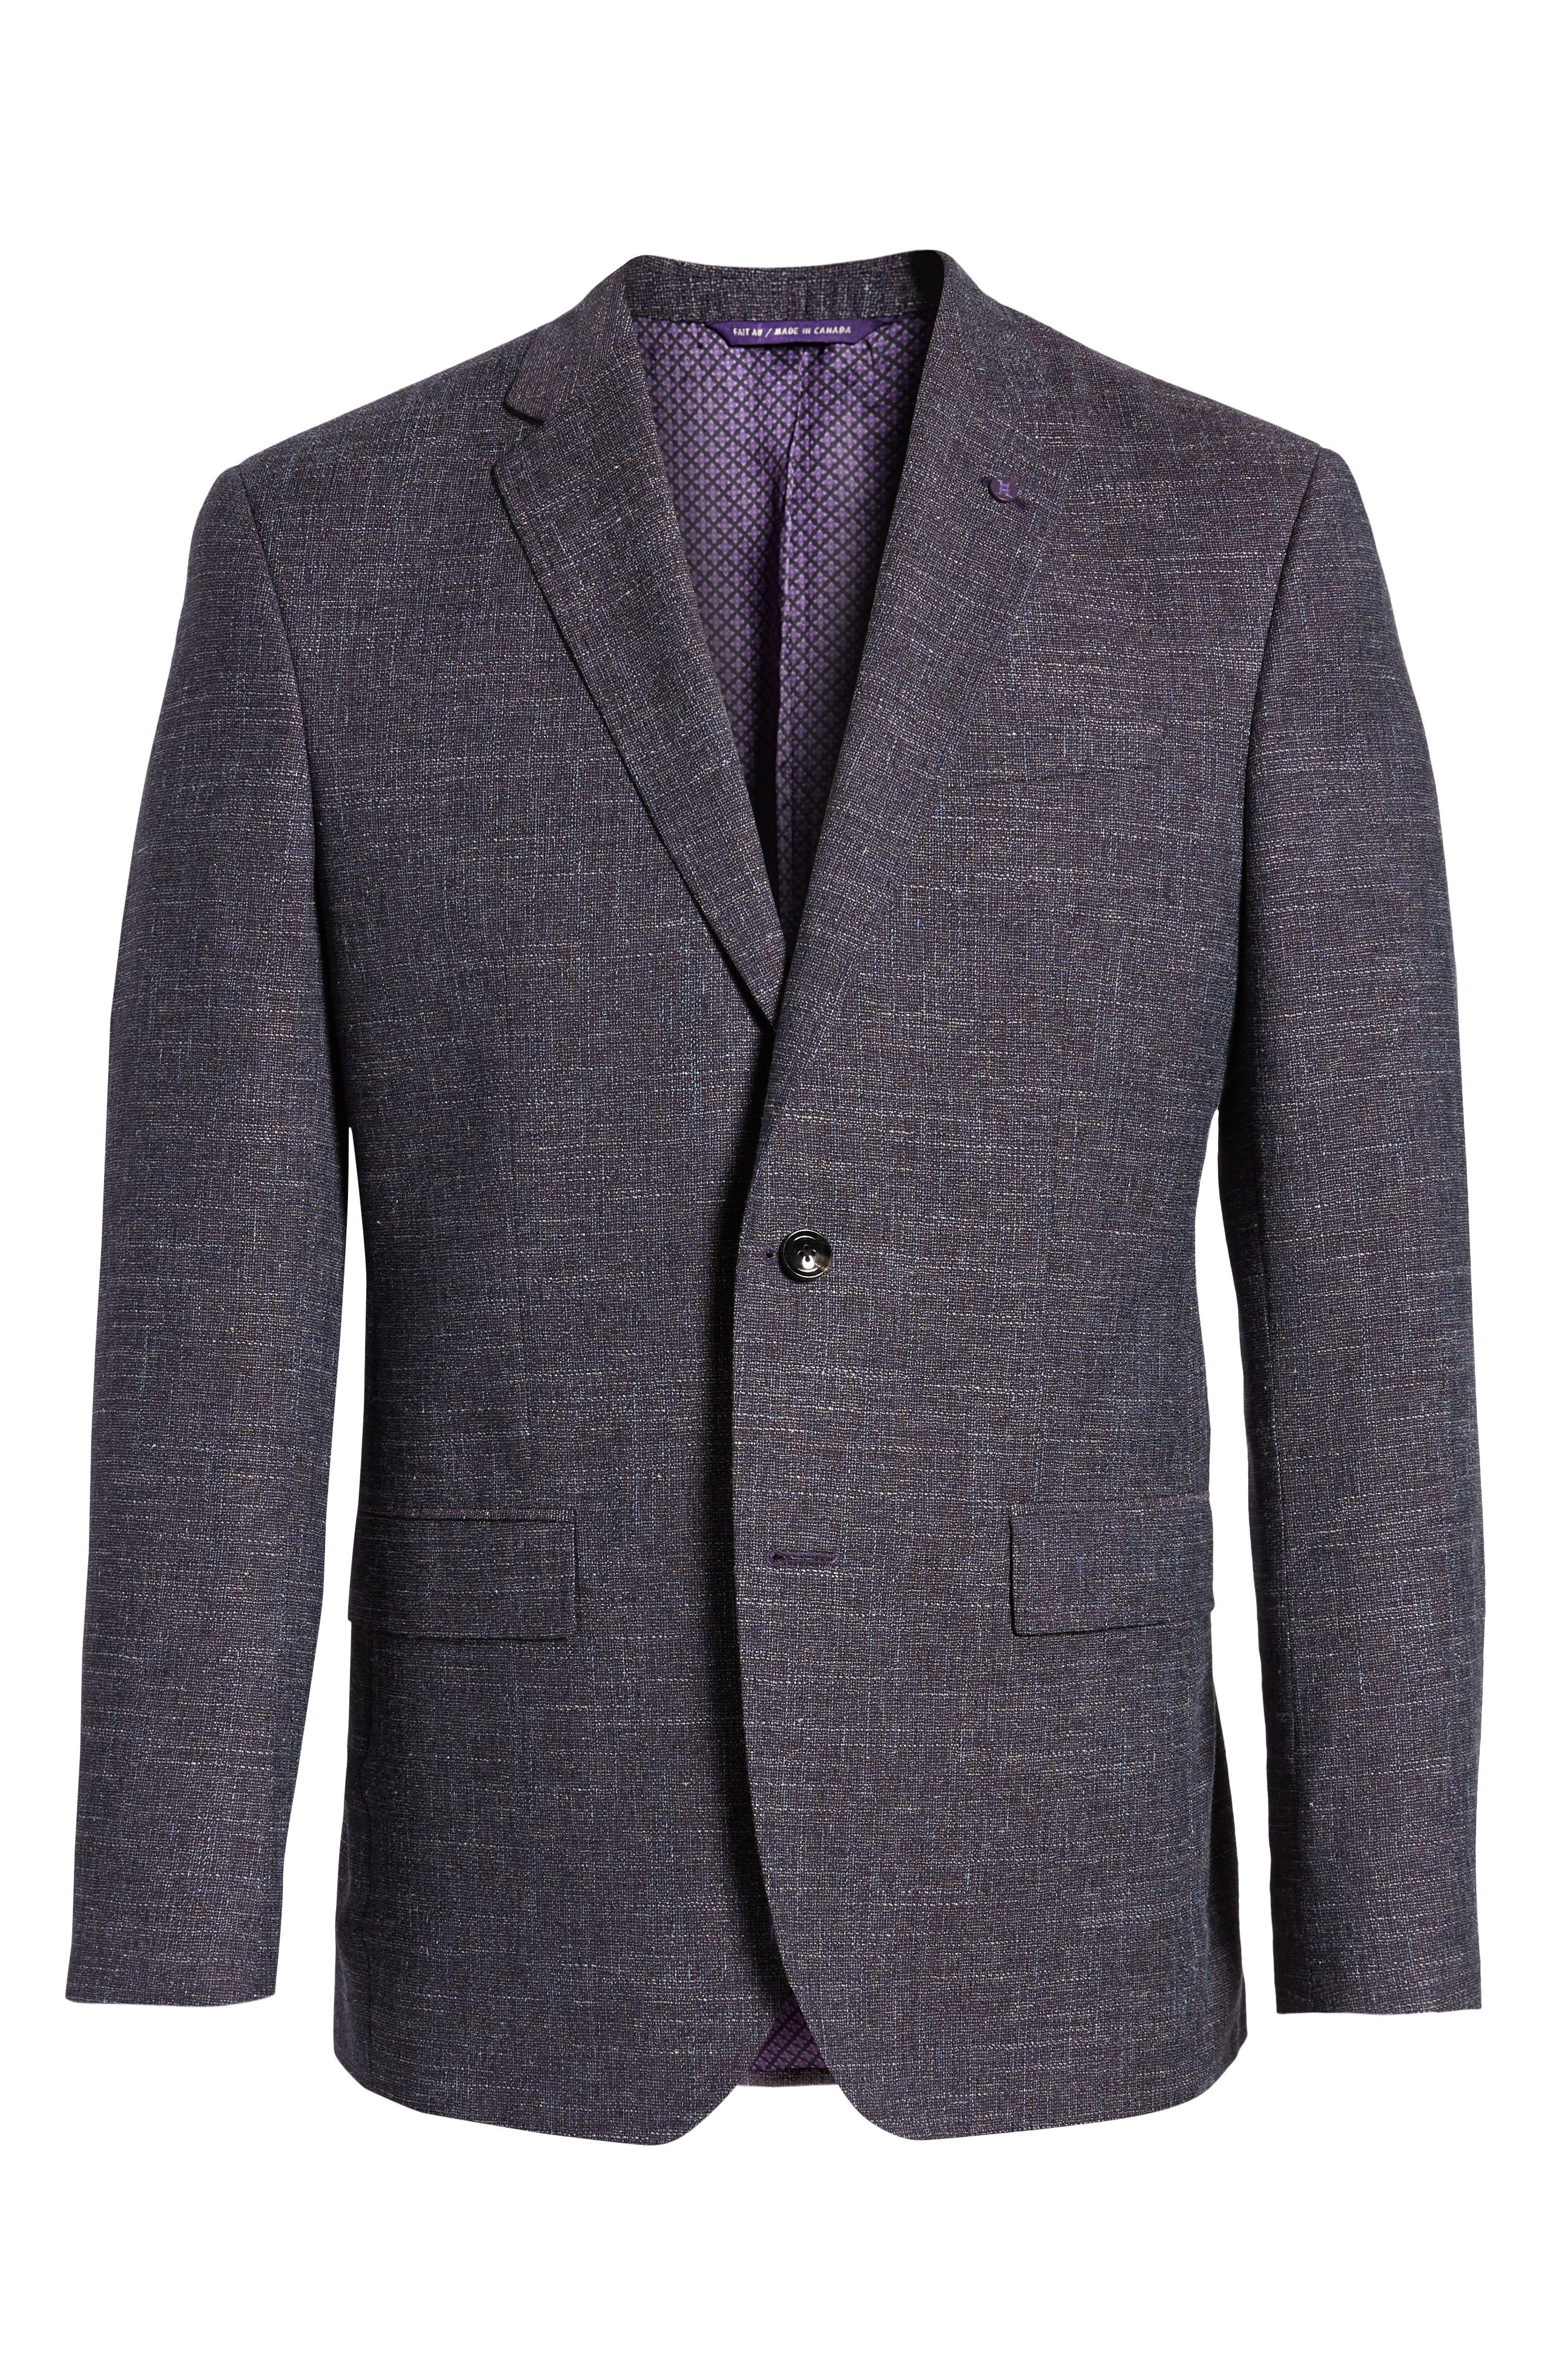 Jay Trim Fit Slubbed Wool, Cotton & Linen Sport Coat,                             Alternate thumbnail 5, color,                             930